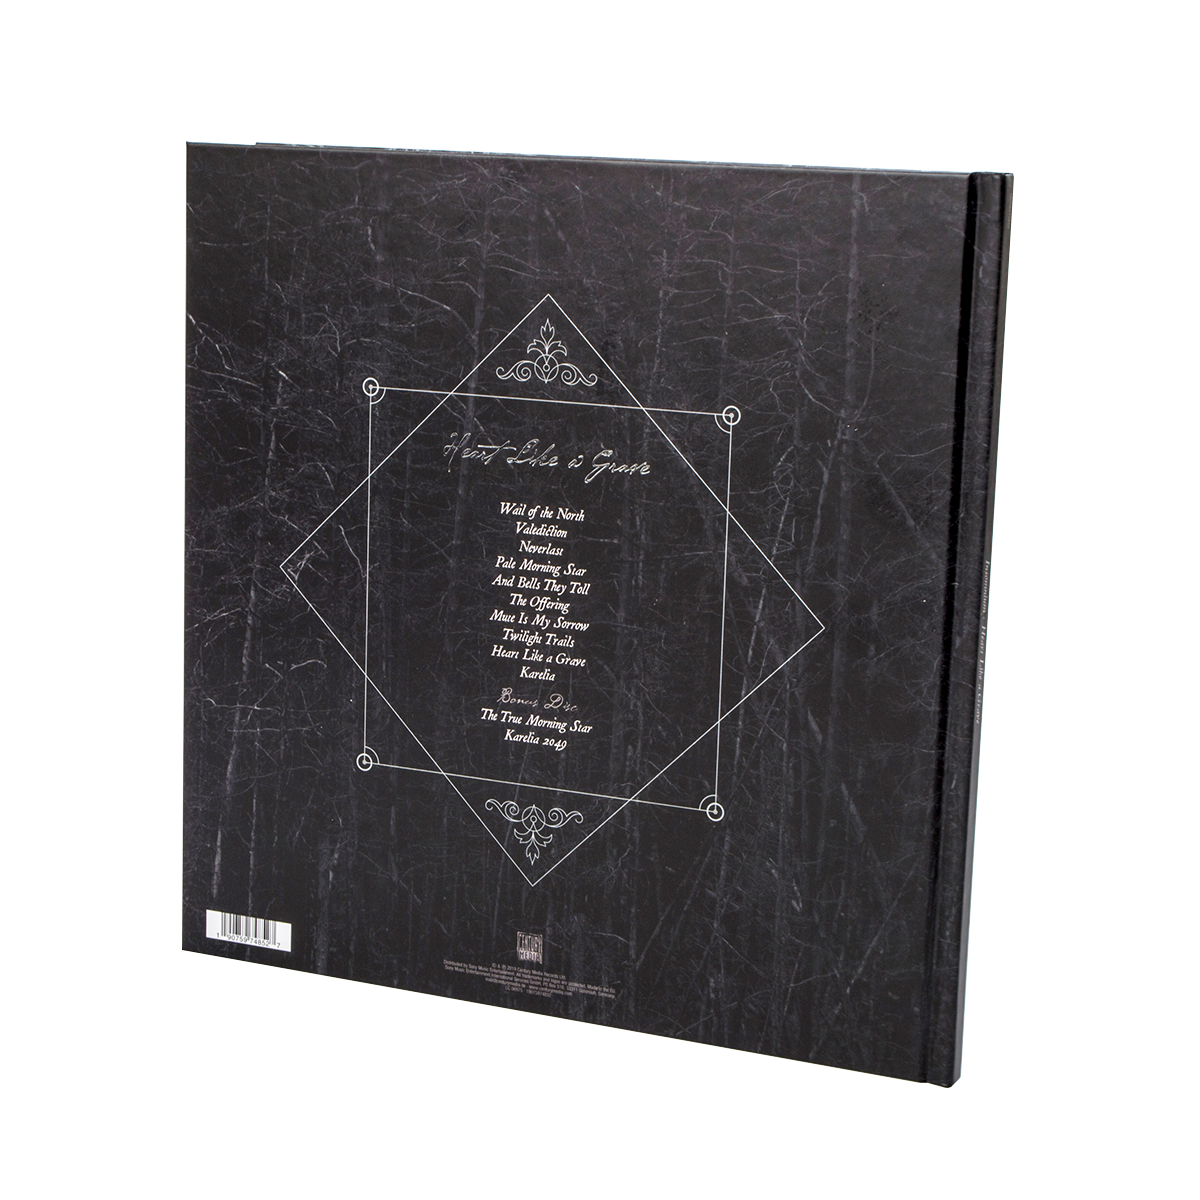 Insomnium - Heart Like A Grave Limited Deluxe 2-CD Artbook + Green Vinyl LP + Jewelcase CD + T-Shirt